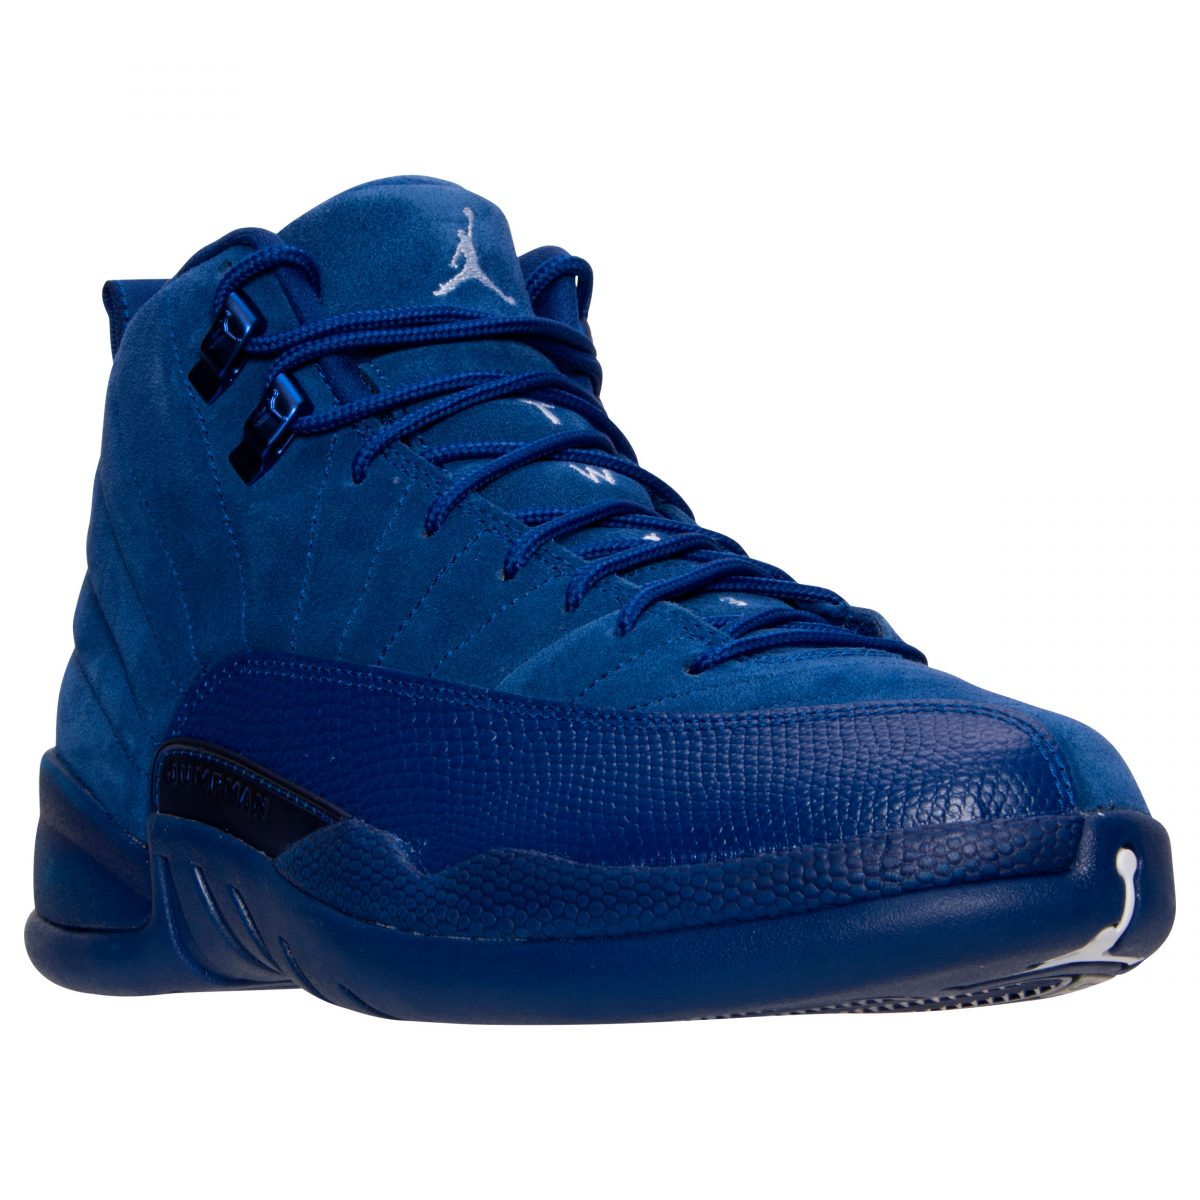 Air Jordan 12 PRM deep Royal Blue 3